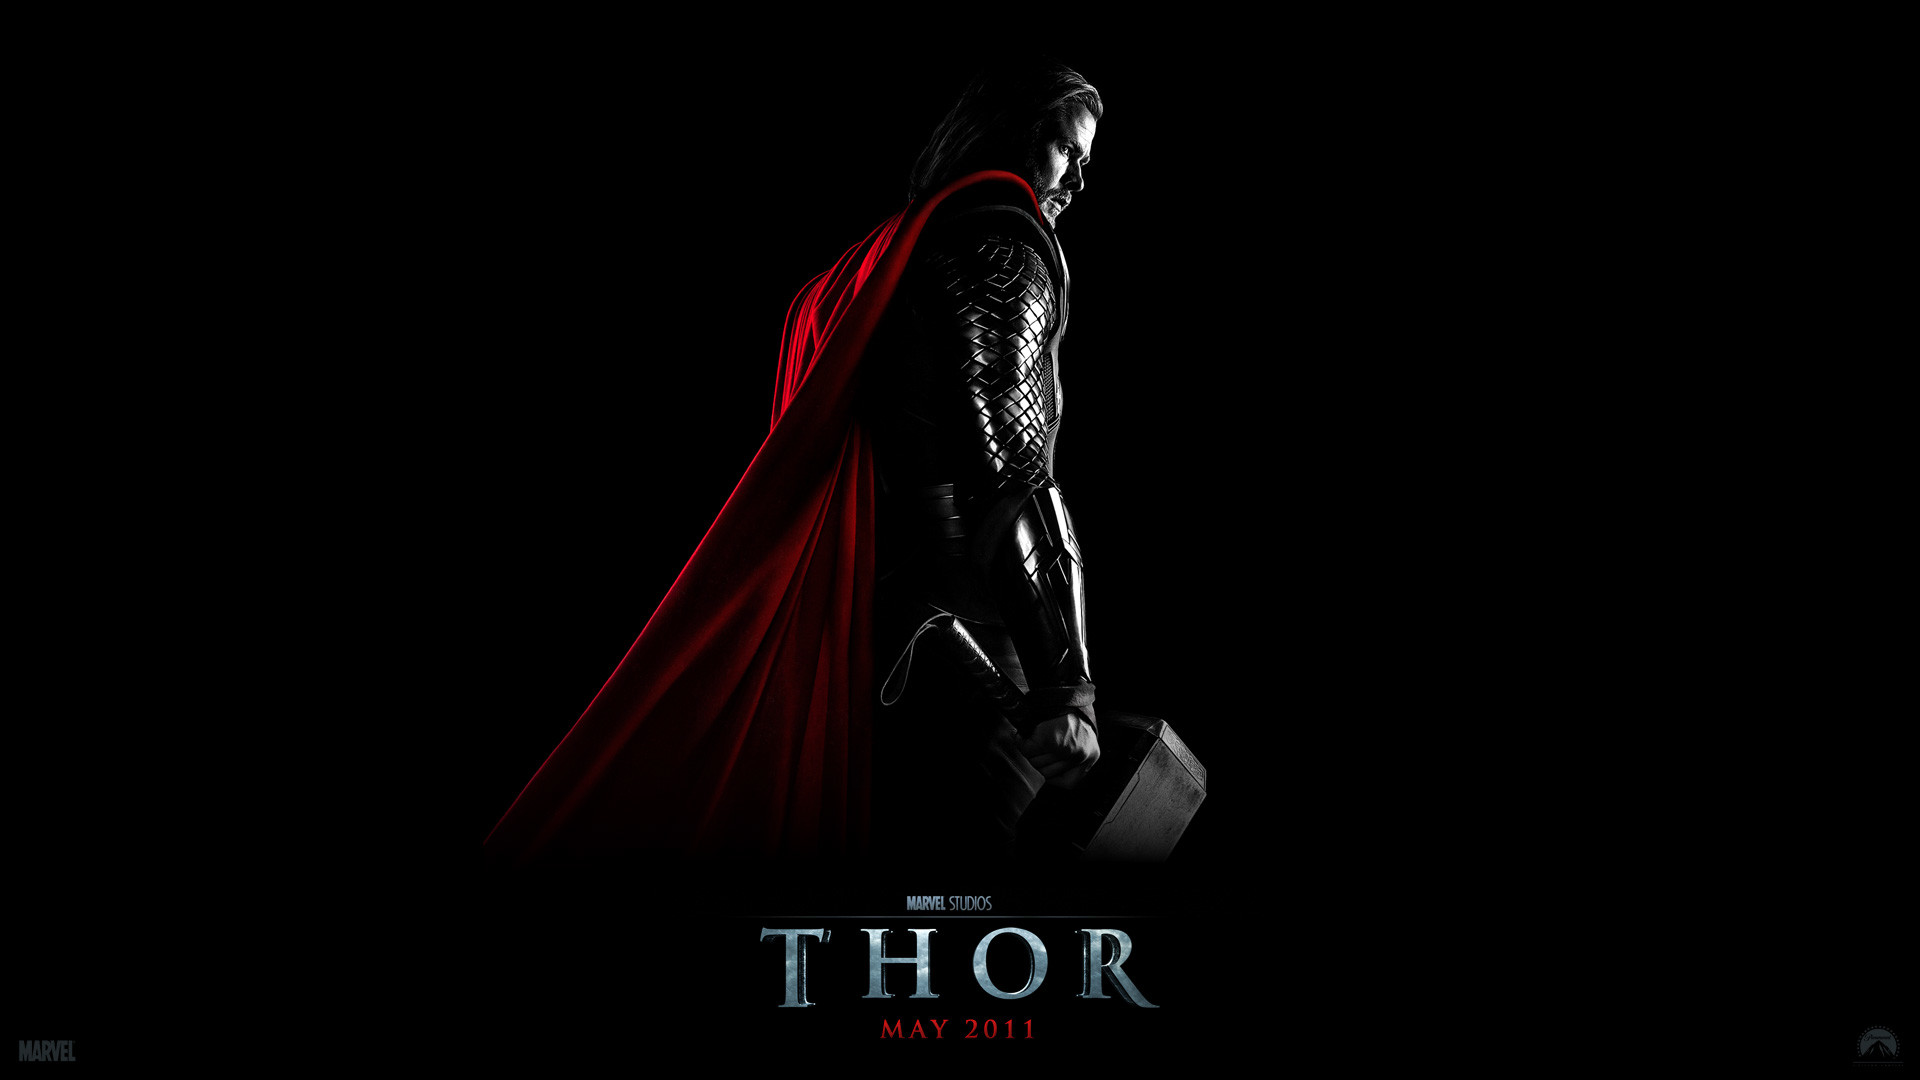 Thor from the Marvel Studios movie Thor wallpaper